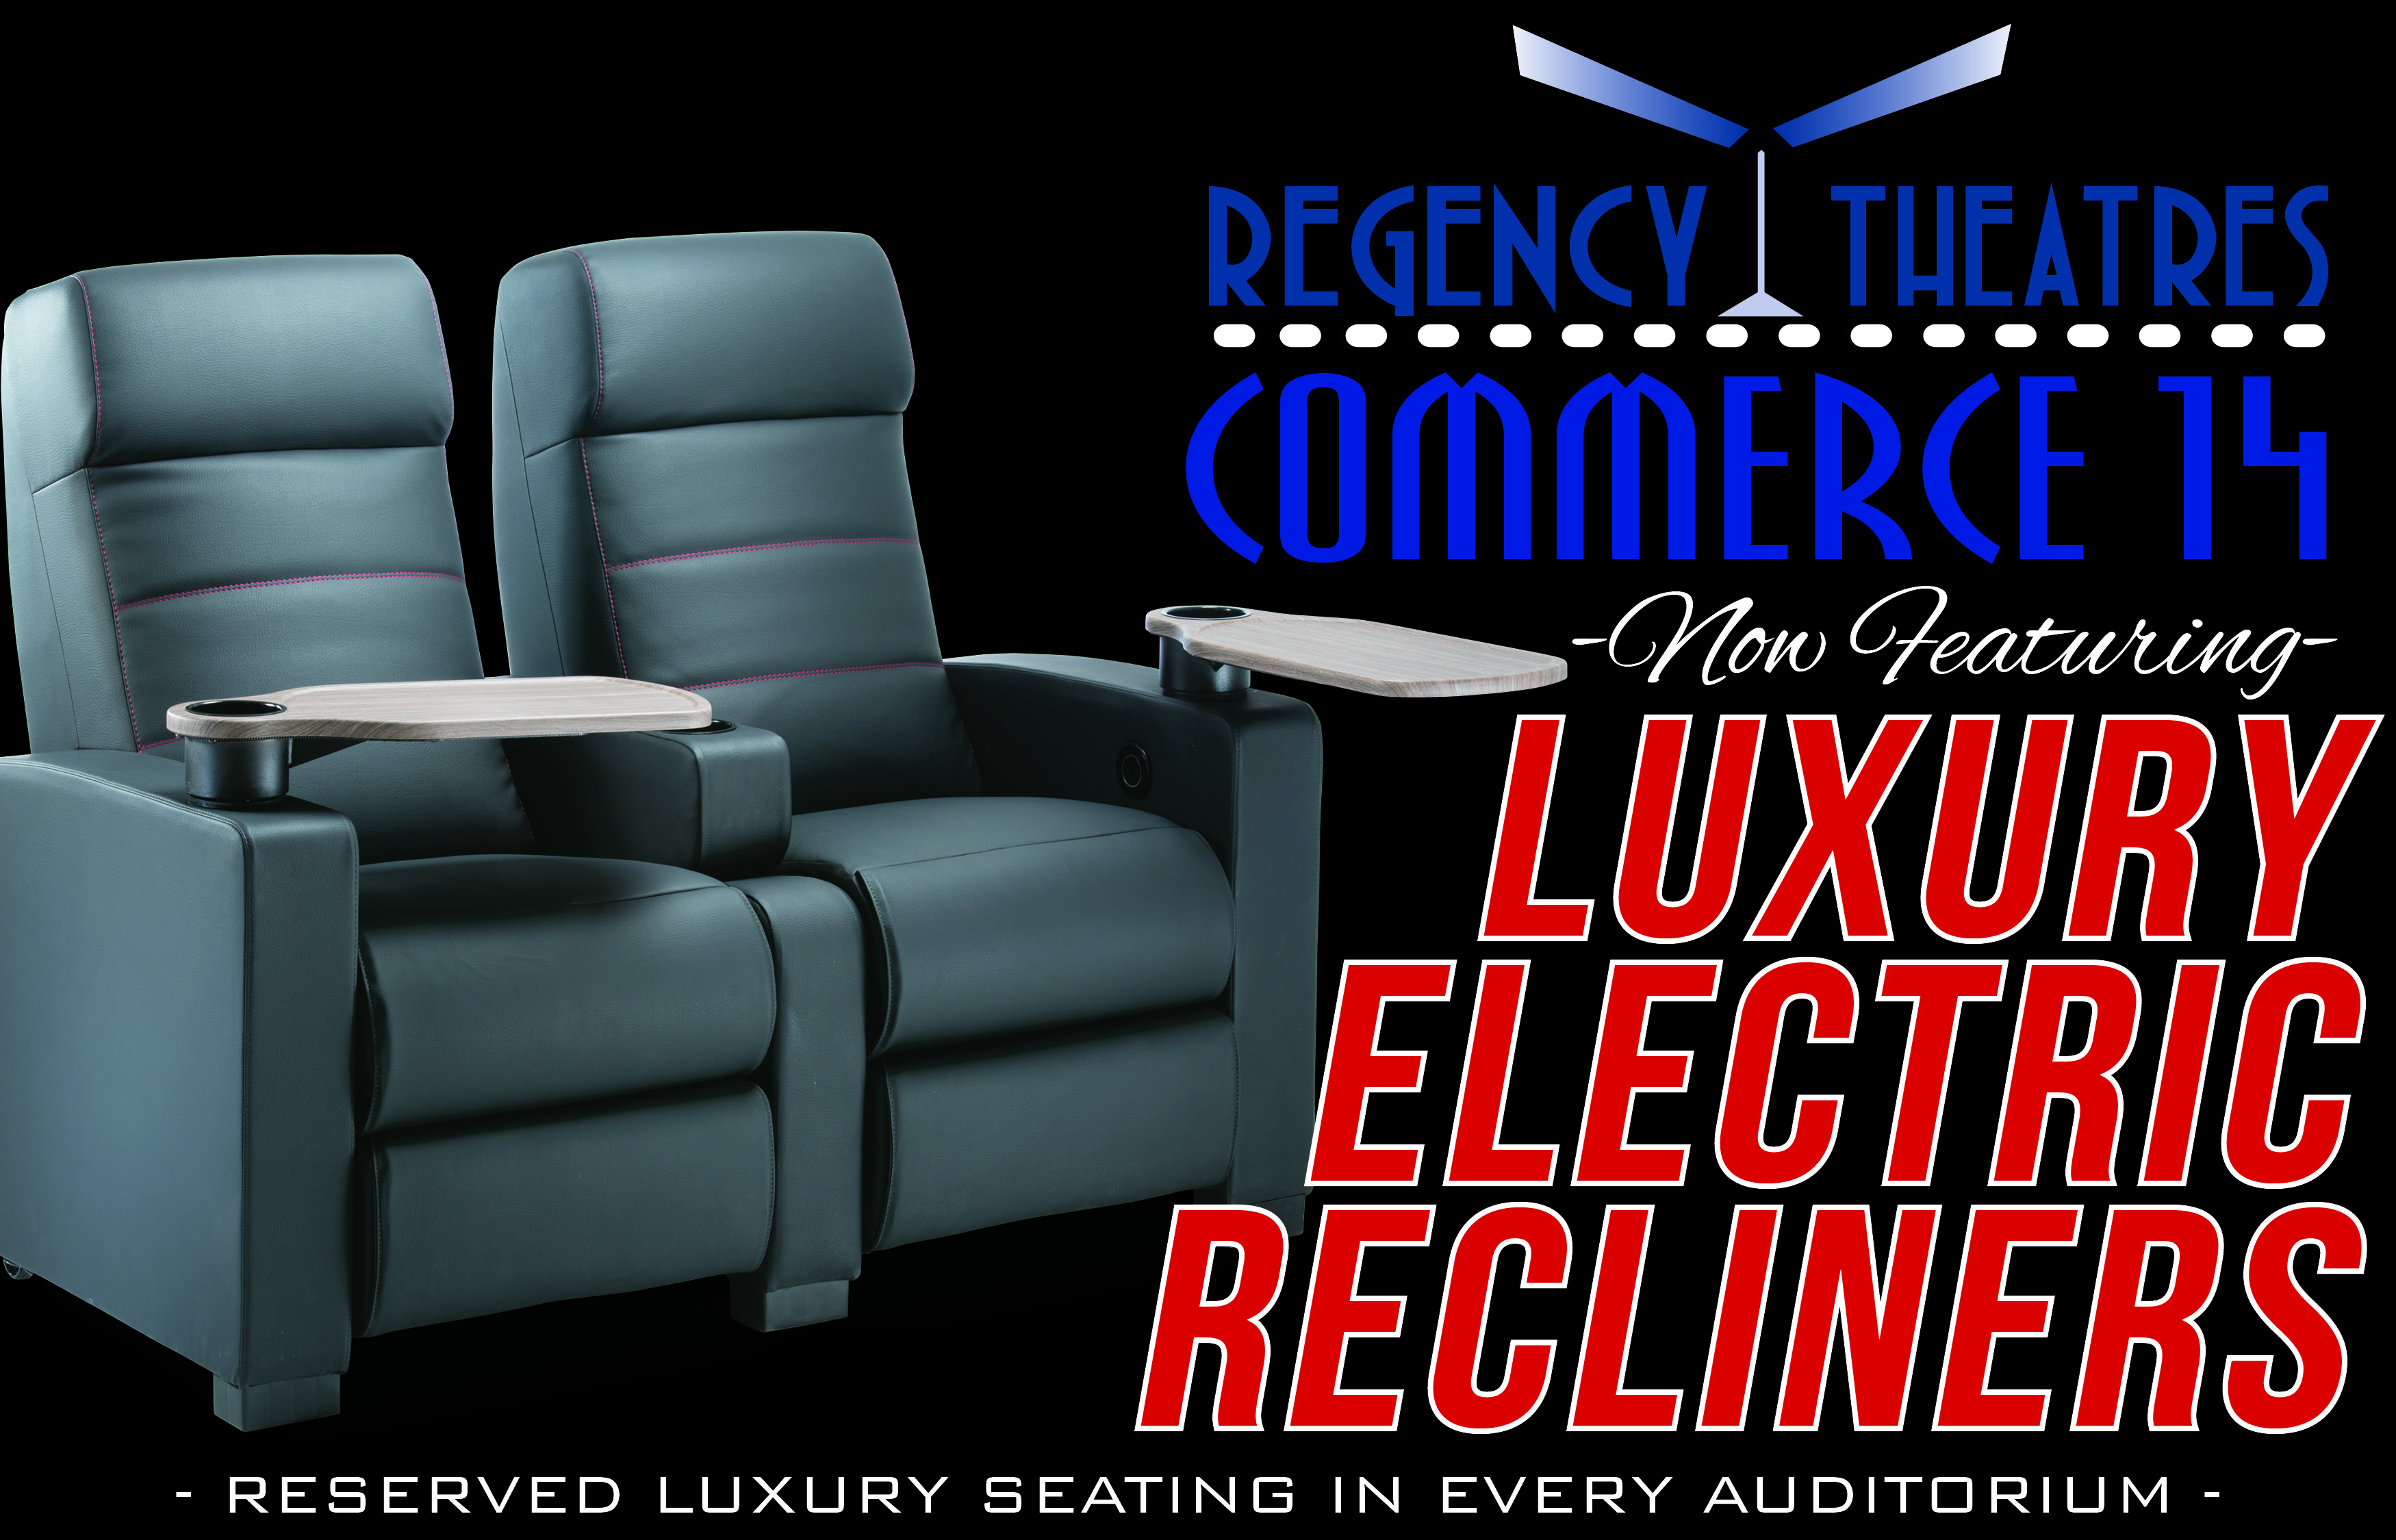 Luxury Electric Recliners